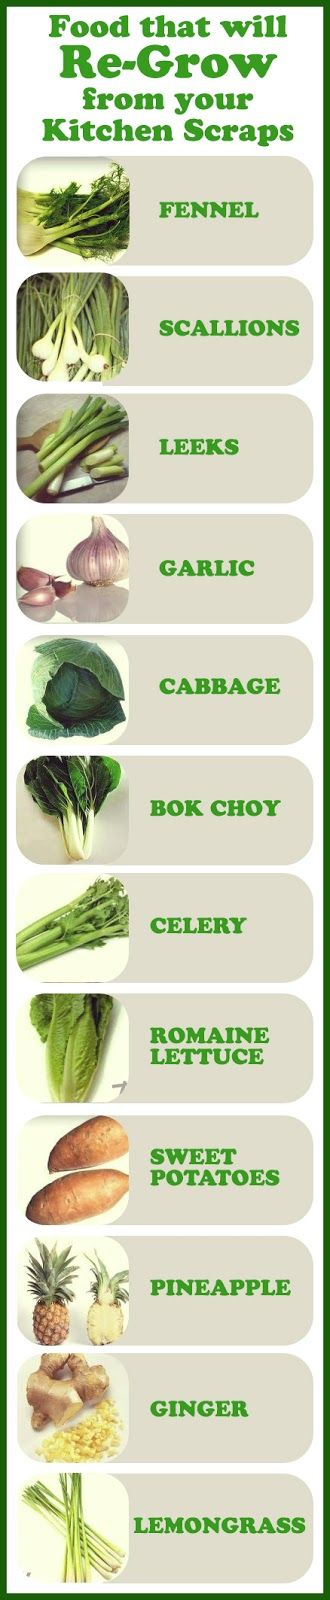 This is a great list of plants that you can regrow! how awesome! #plants #organic #healthy #vegan #veggies #garden